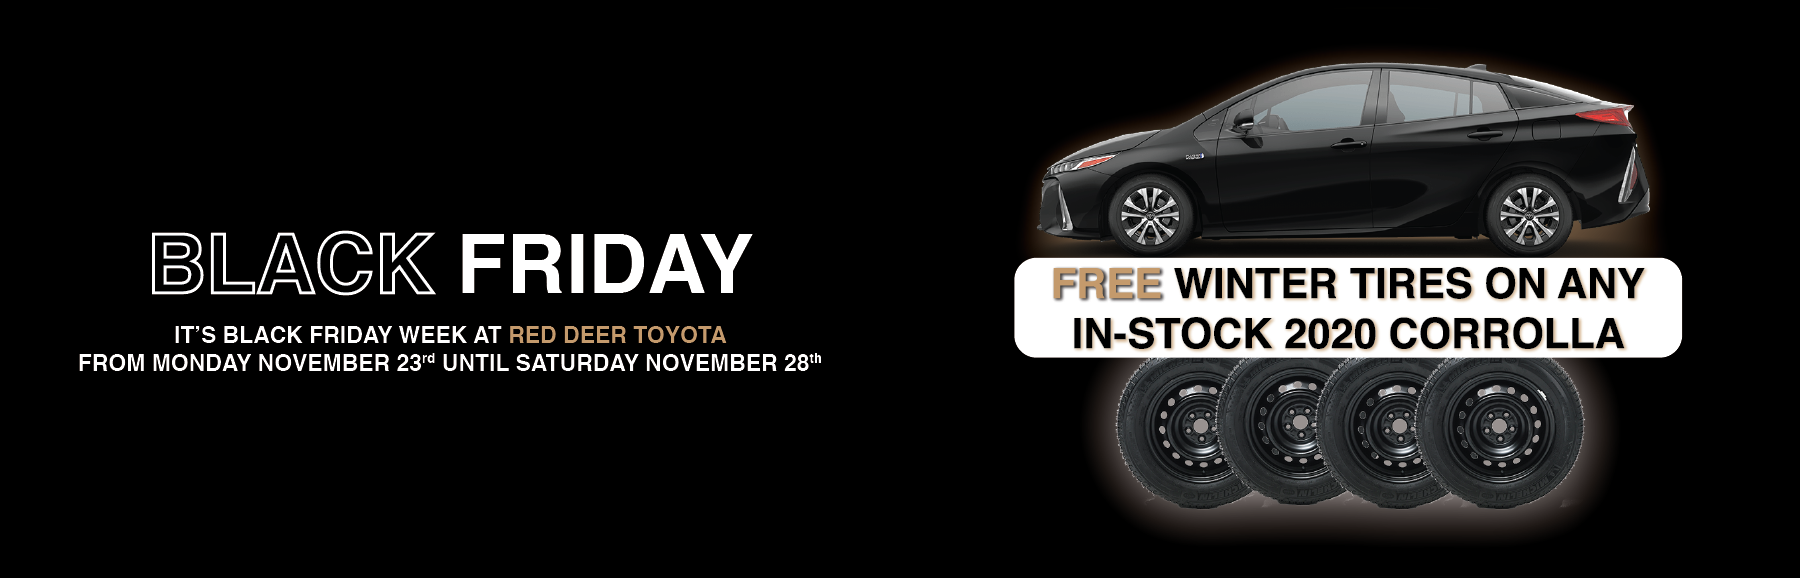 Black Friday Sale Free Winter Tires Prius